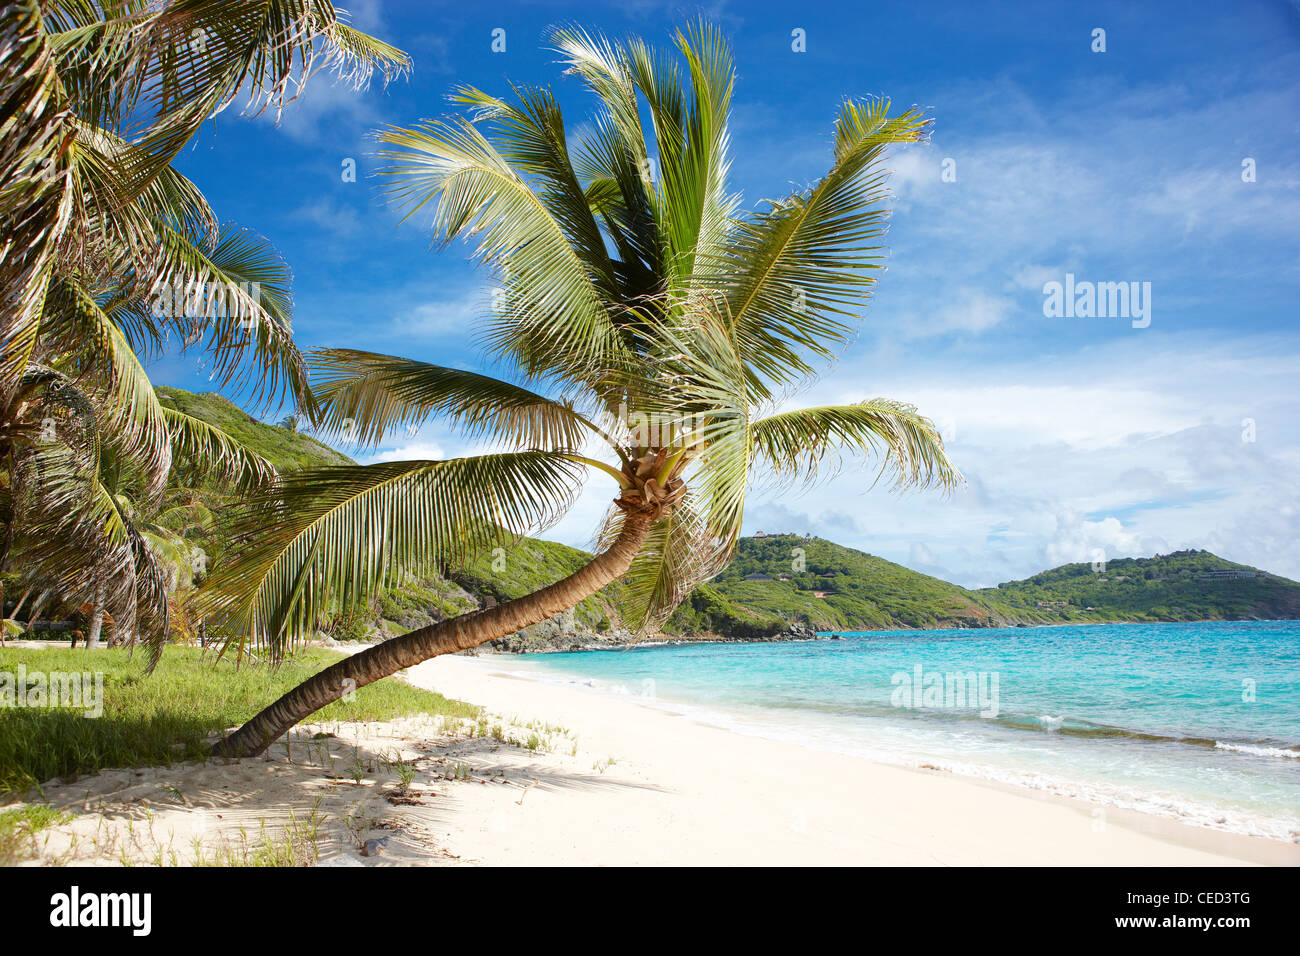 empty tropical beach palm tree - Stock Image